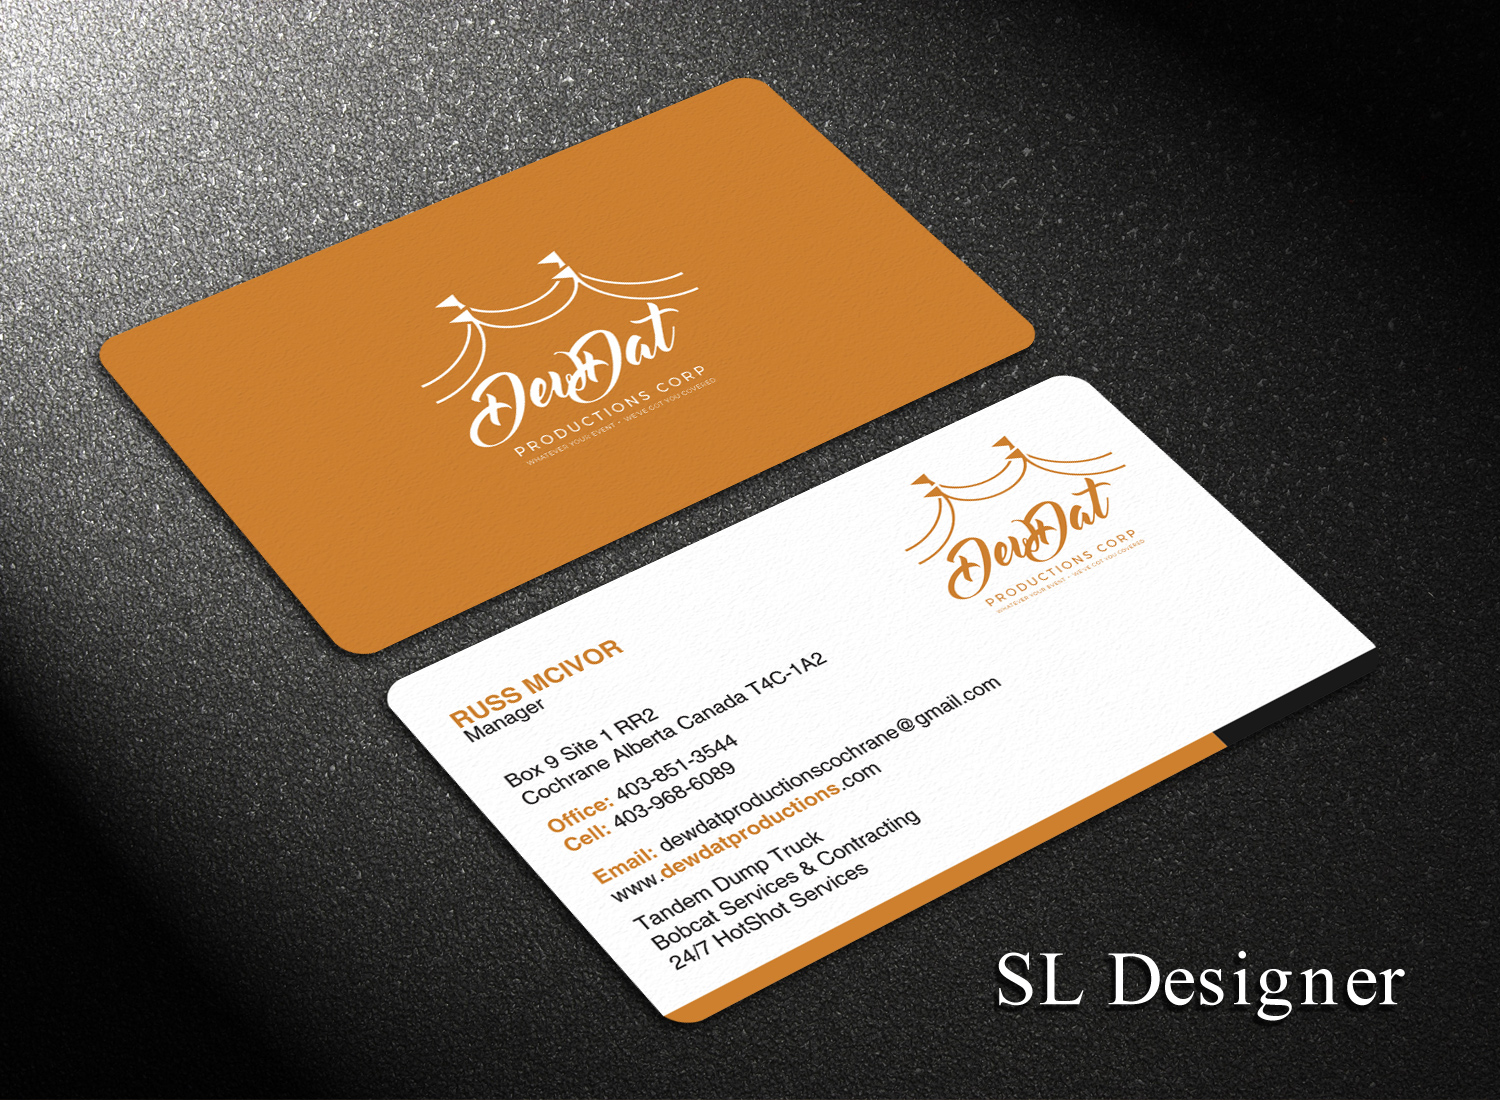 Contractor Business Card Design for a Company by SL Designer